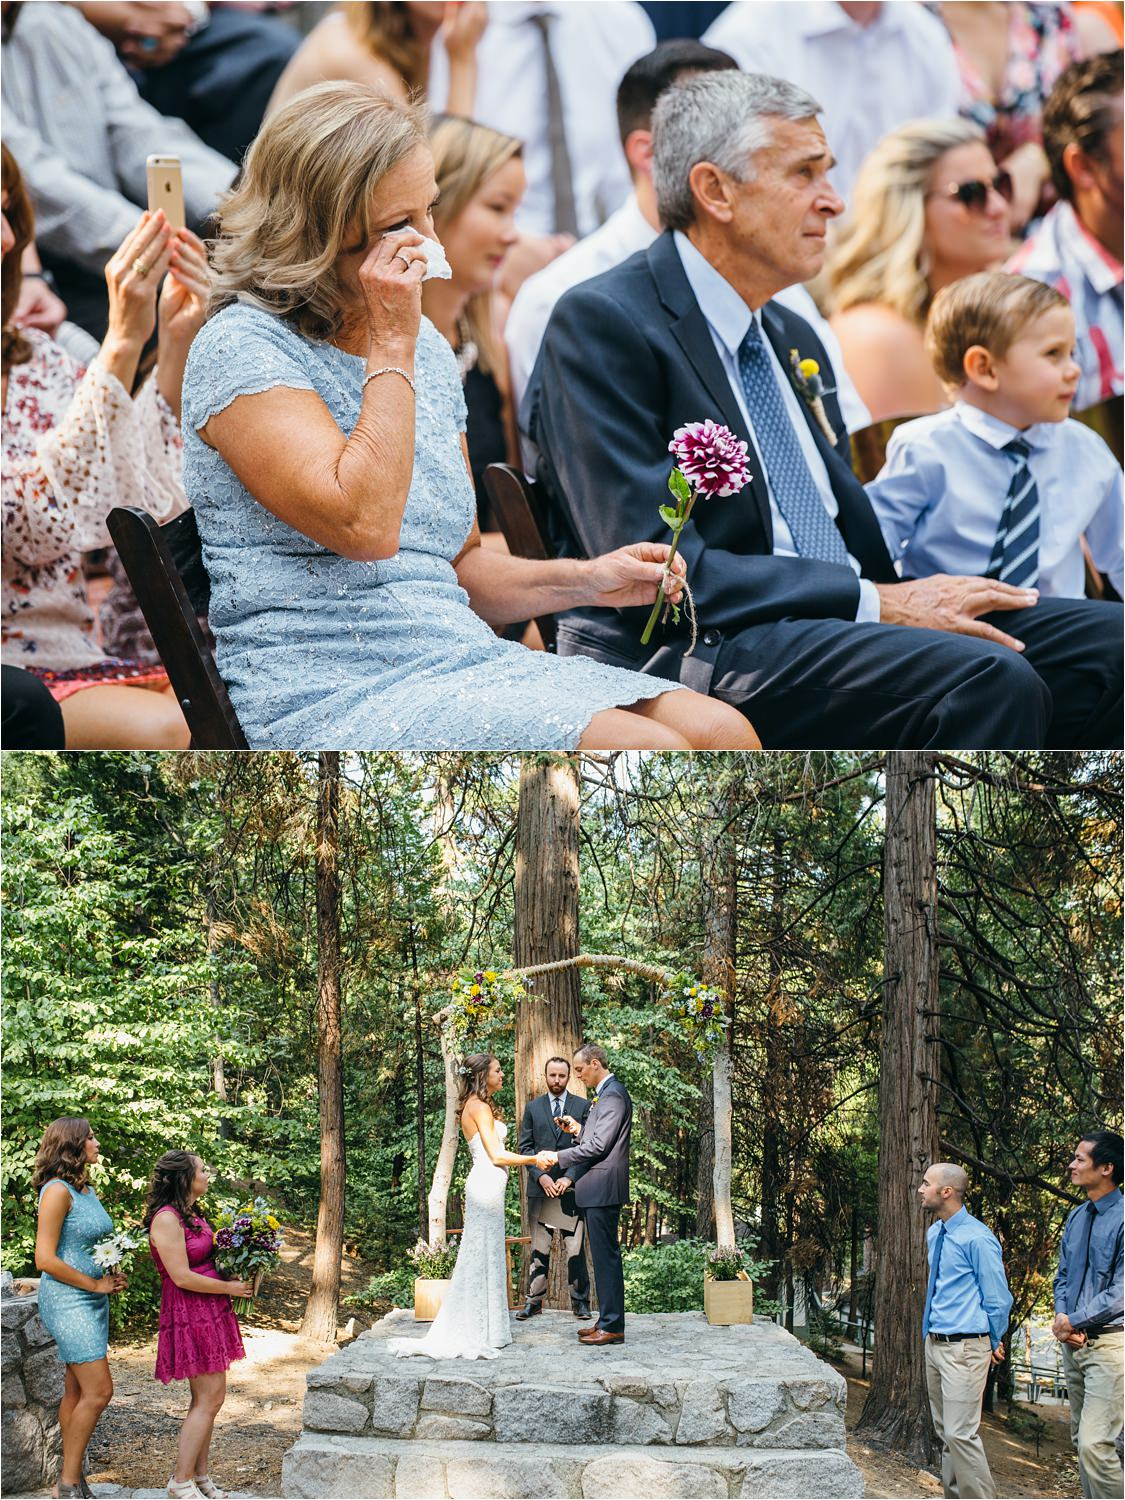 Emotional Wedding Ceremony - Mountain Wedding - Mountainside Wedding Ceremony - https://brittneyhannonphotography.com